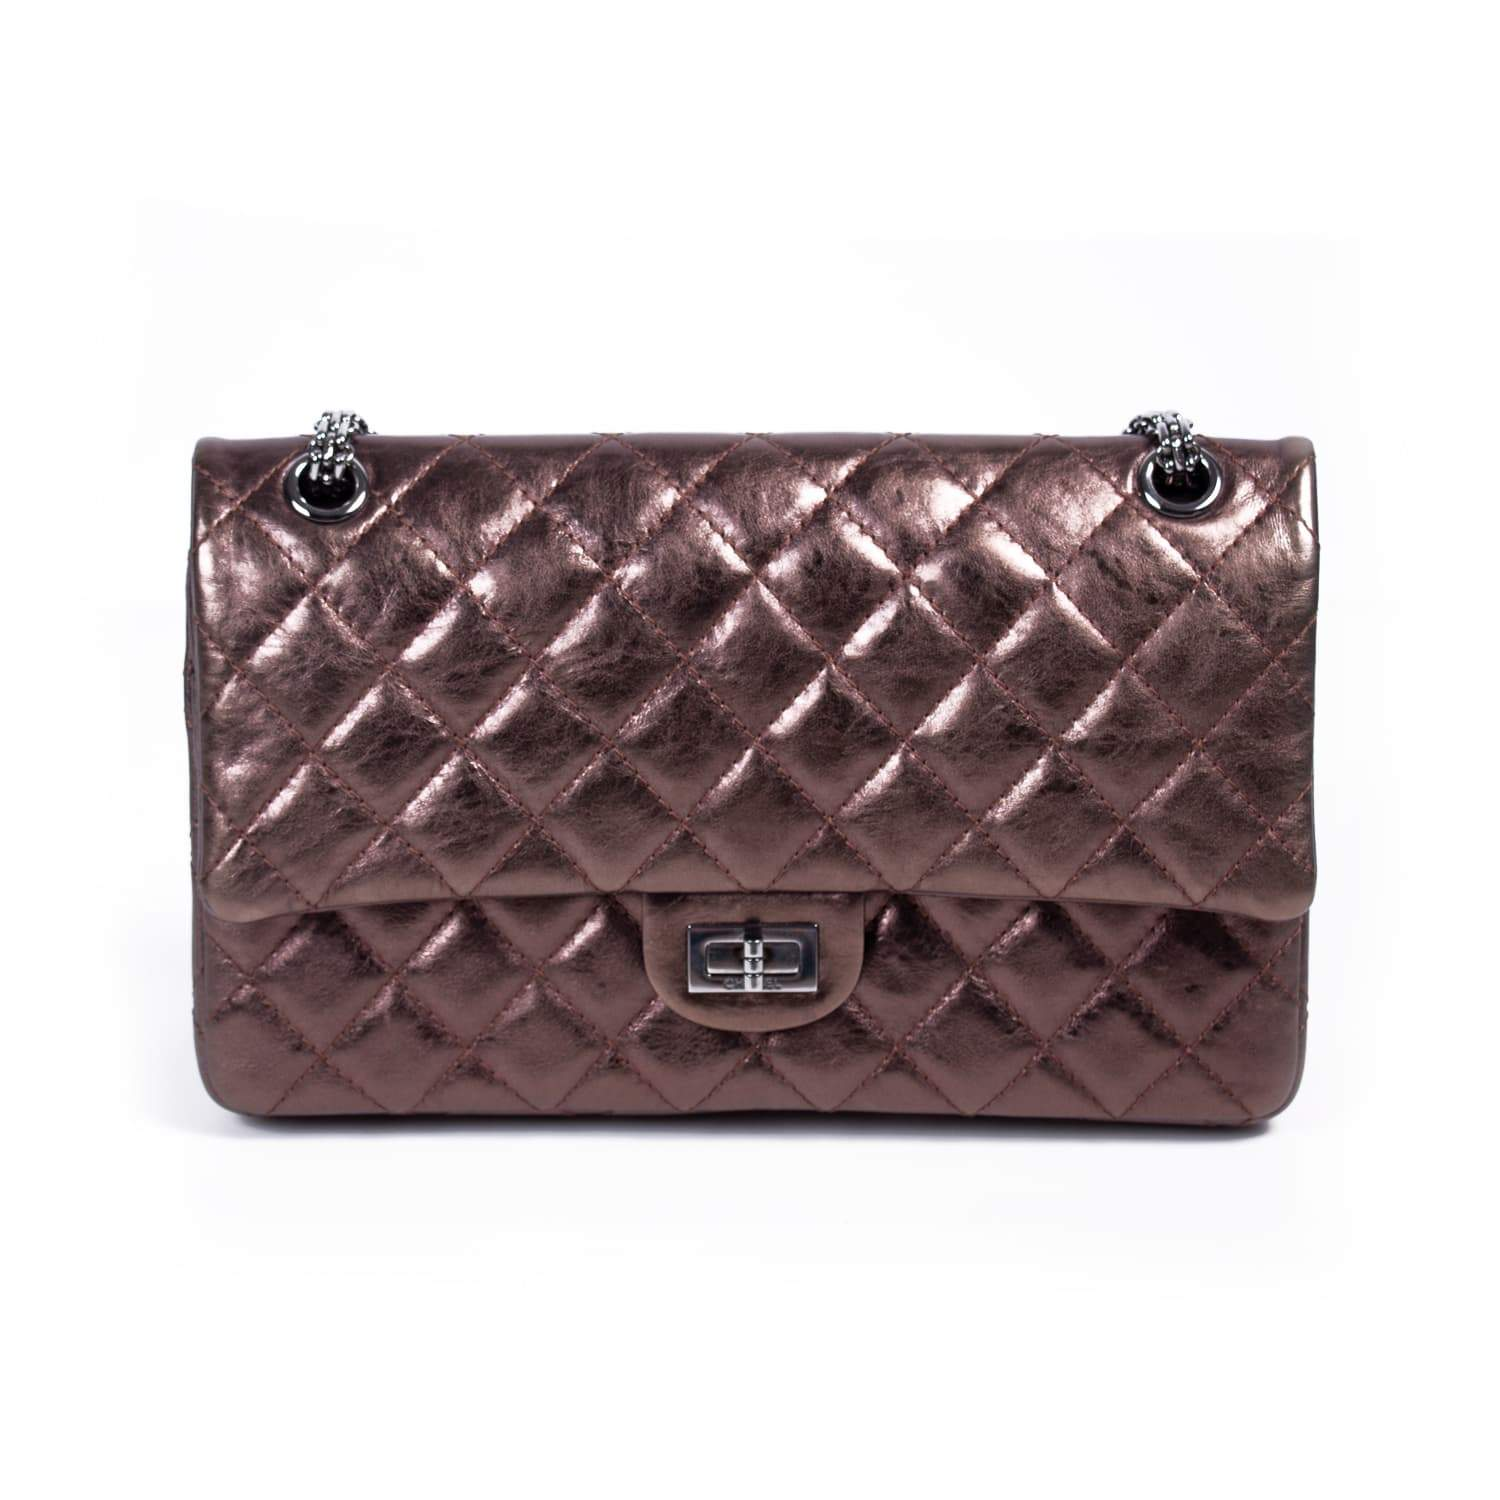 bbf29ecb2e3d Chanel Bronze Quilted Leather Reissue 2.55 Classic 226 Flap Bag - My Luxury  Bargain